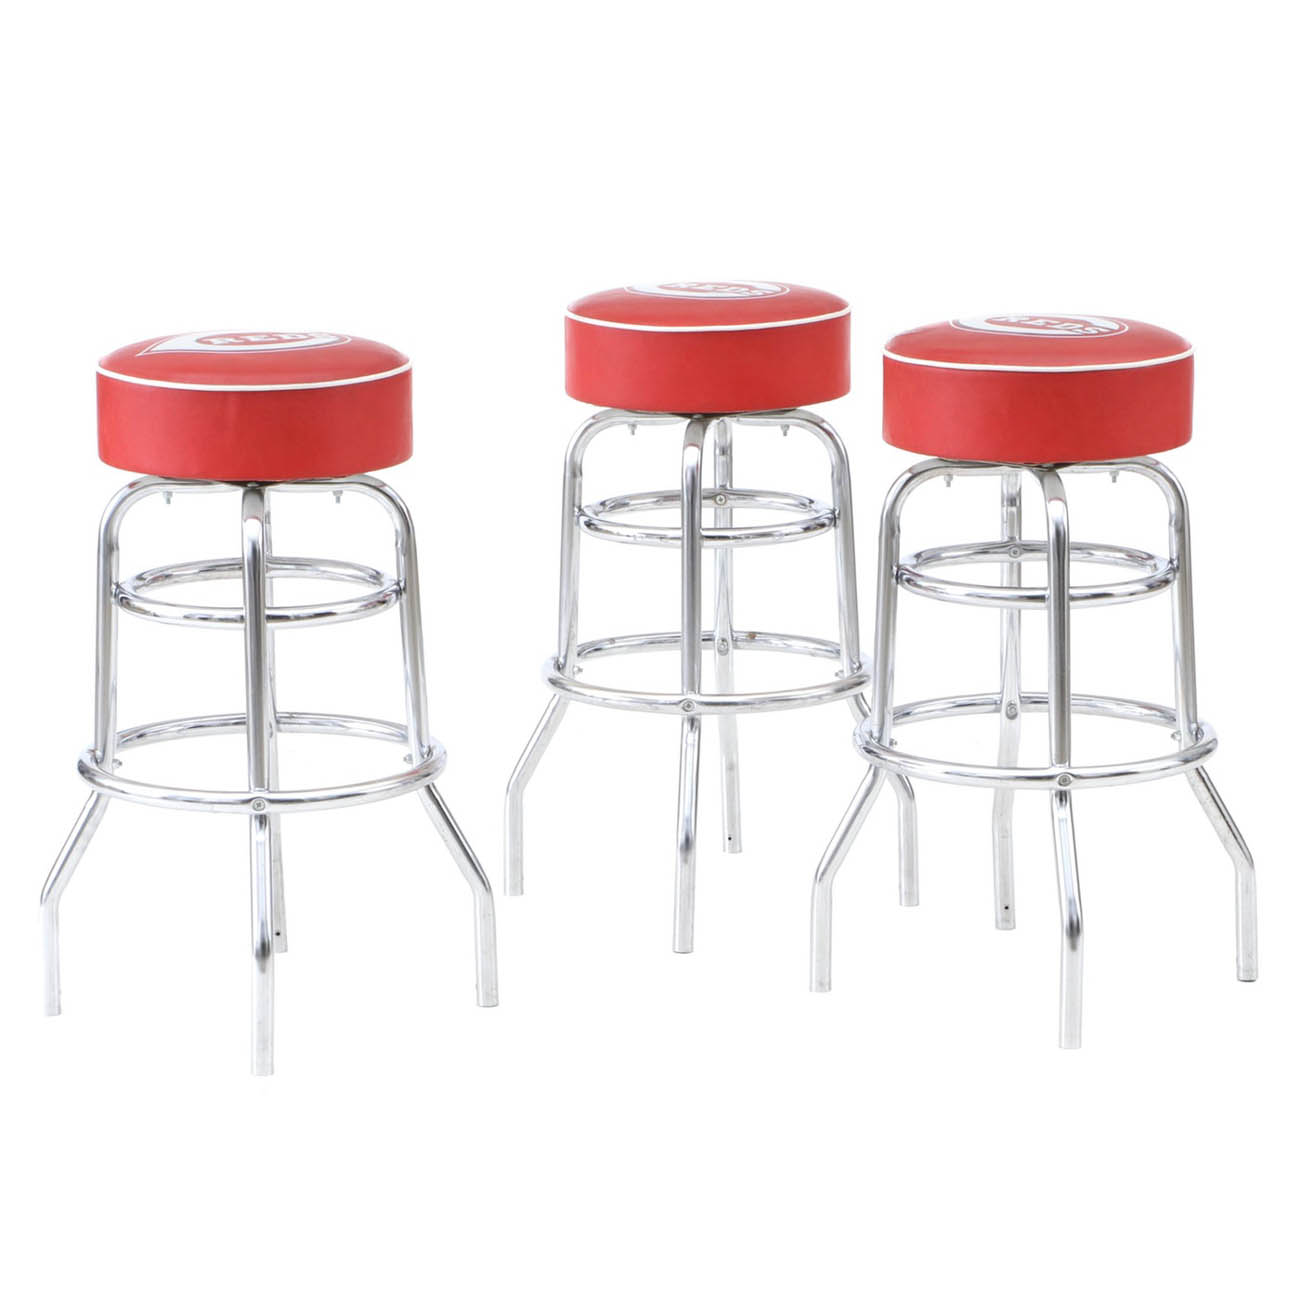 Three Cincinnati Reds bar stools that sat in The Reds Hall of Fame / Image courtesy of Everything But The House (EBTH) // Published: 12.6.18